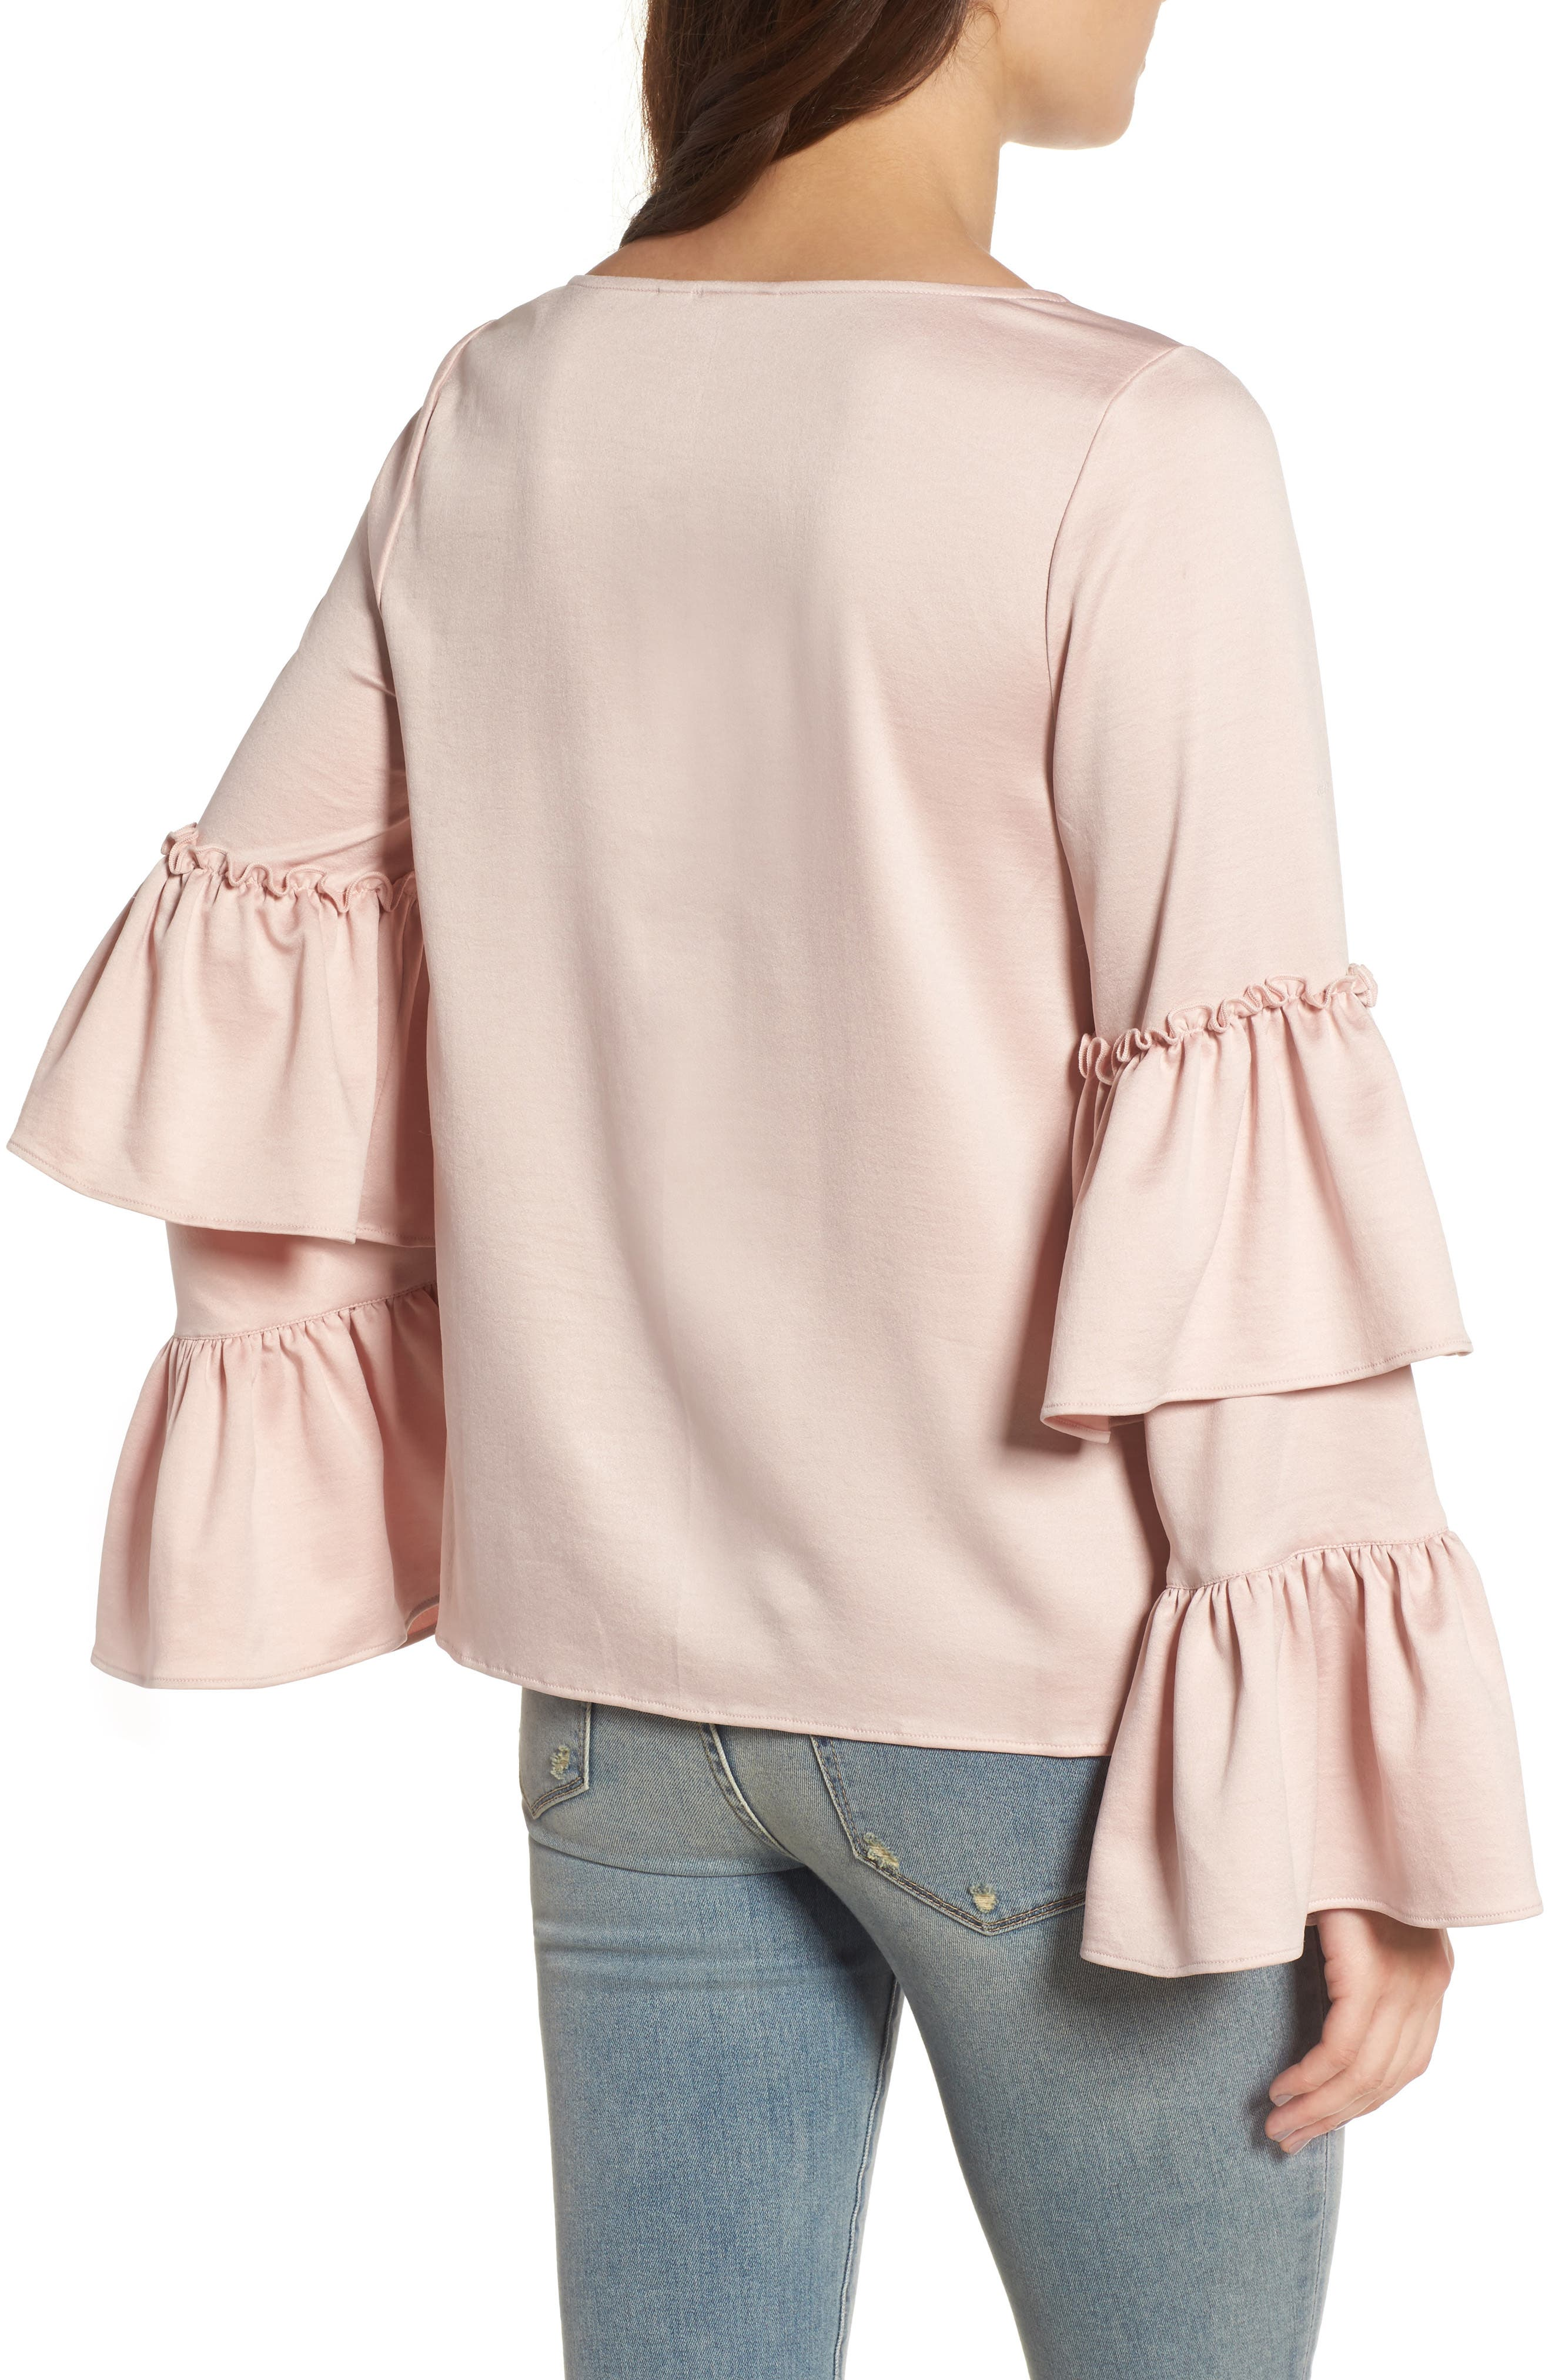 Ruffle Sleeve Satin Blouse,                             Alternate thumbnail 2, color,                             Pink Peach